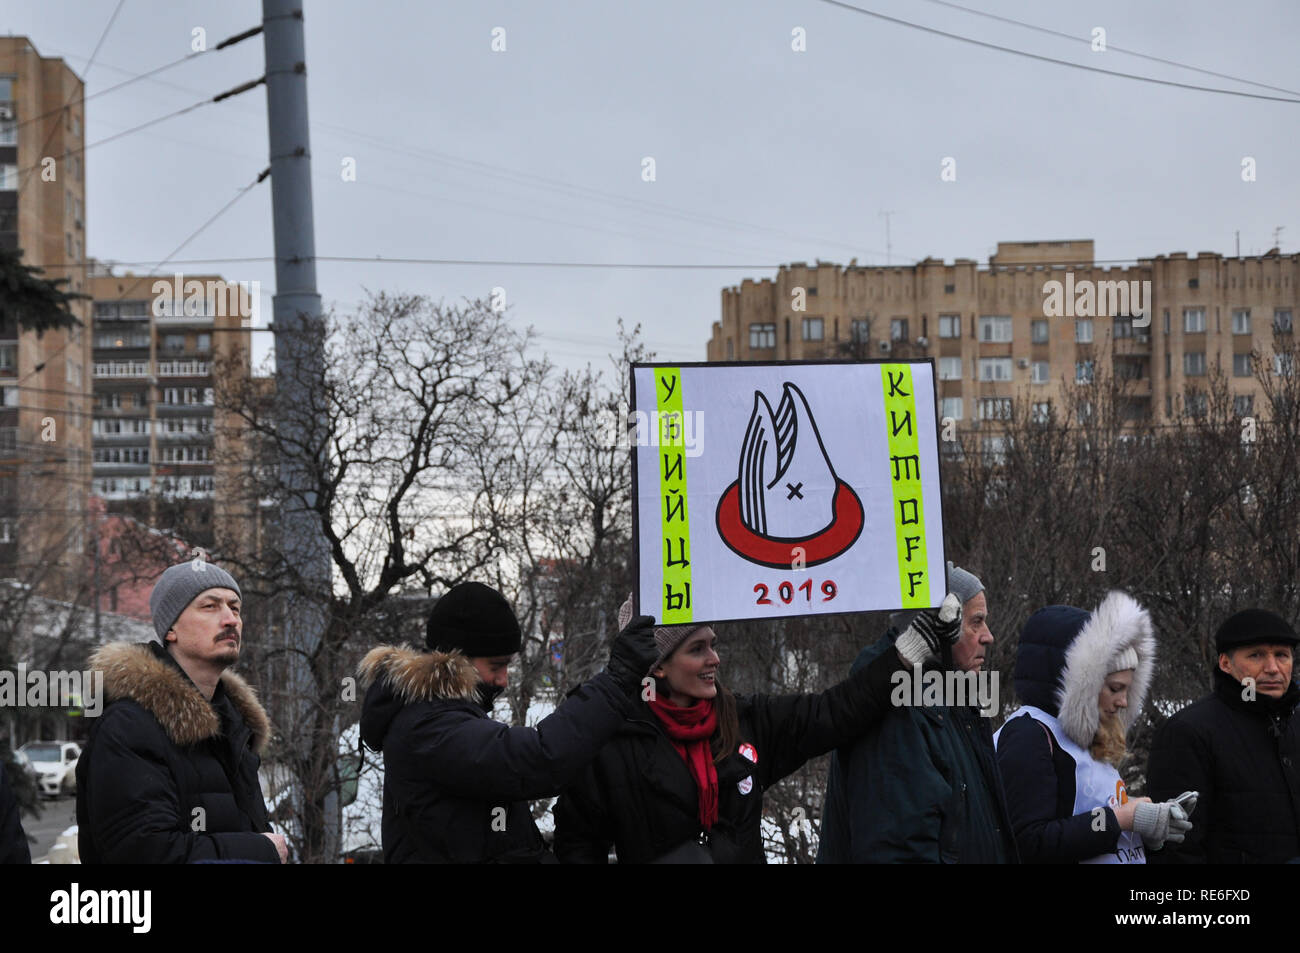 """Moscow, Russia. 20th Jan, 2019. Activists are holding a sign reading """"whale killers"""". Hundreds from both left and right protest possible handover of contested Kuril islands (Northern territories) to Japan at a rally in central Moscow. Credit: Aleks Lokhmutov/Alamy Live News. Stock Photo"""